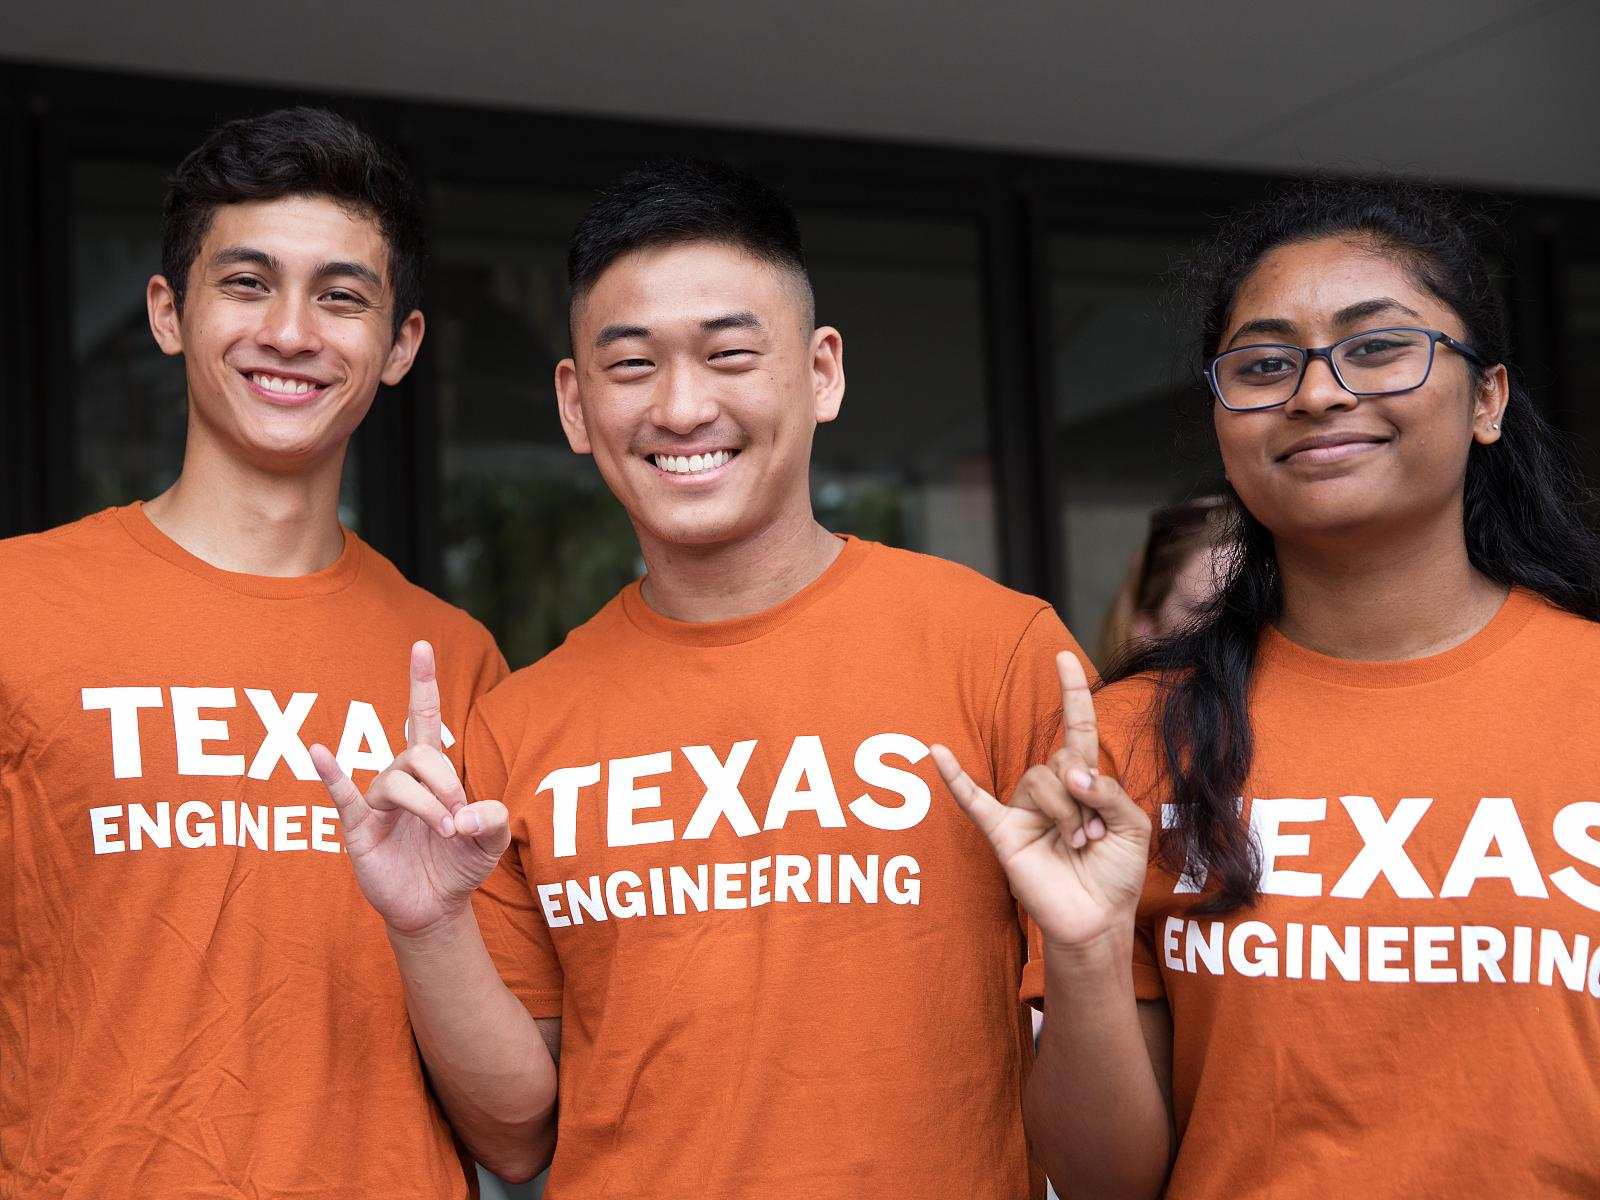 students smiling and wearing texas engineering shirts